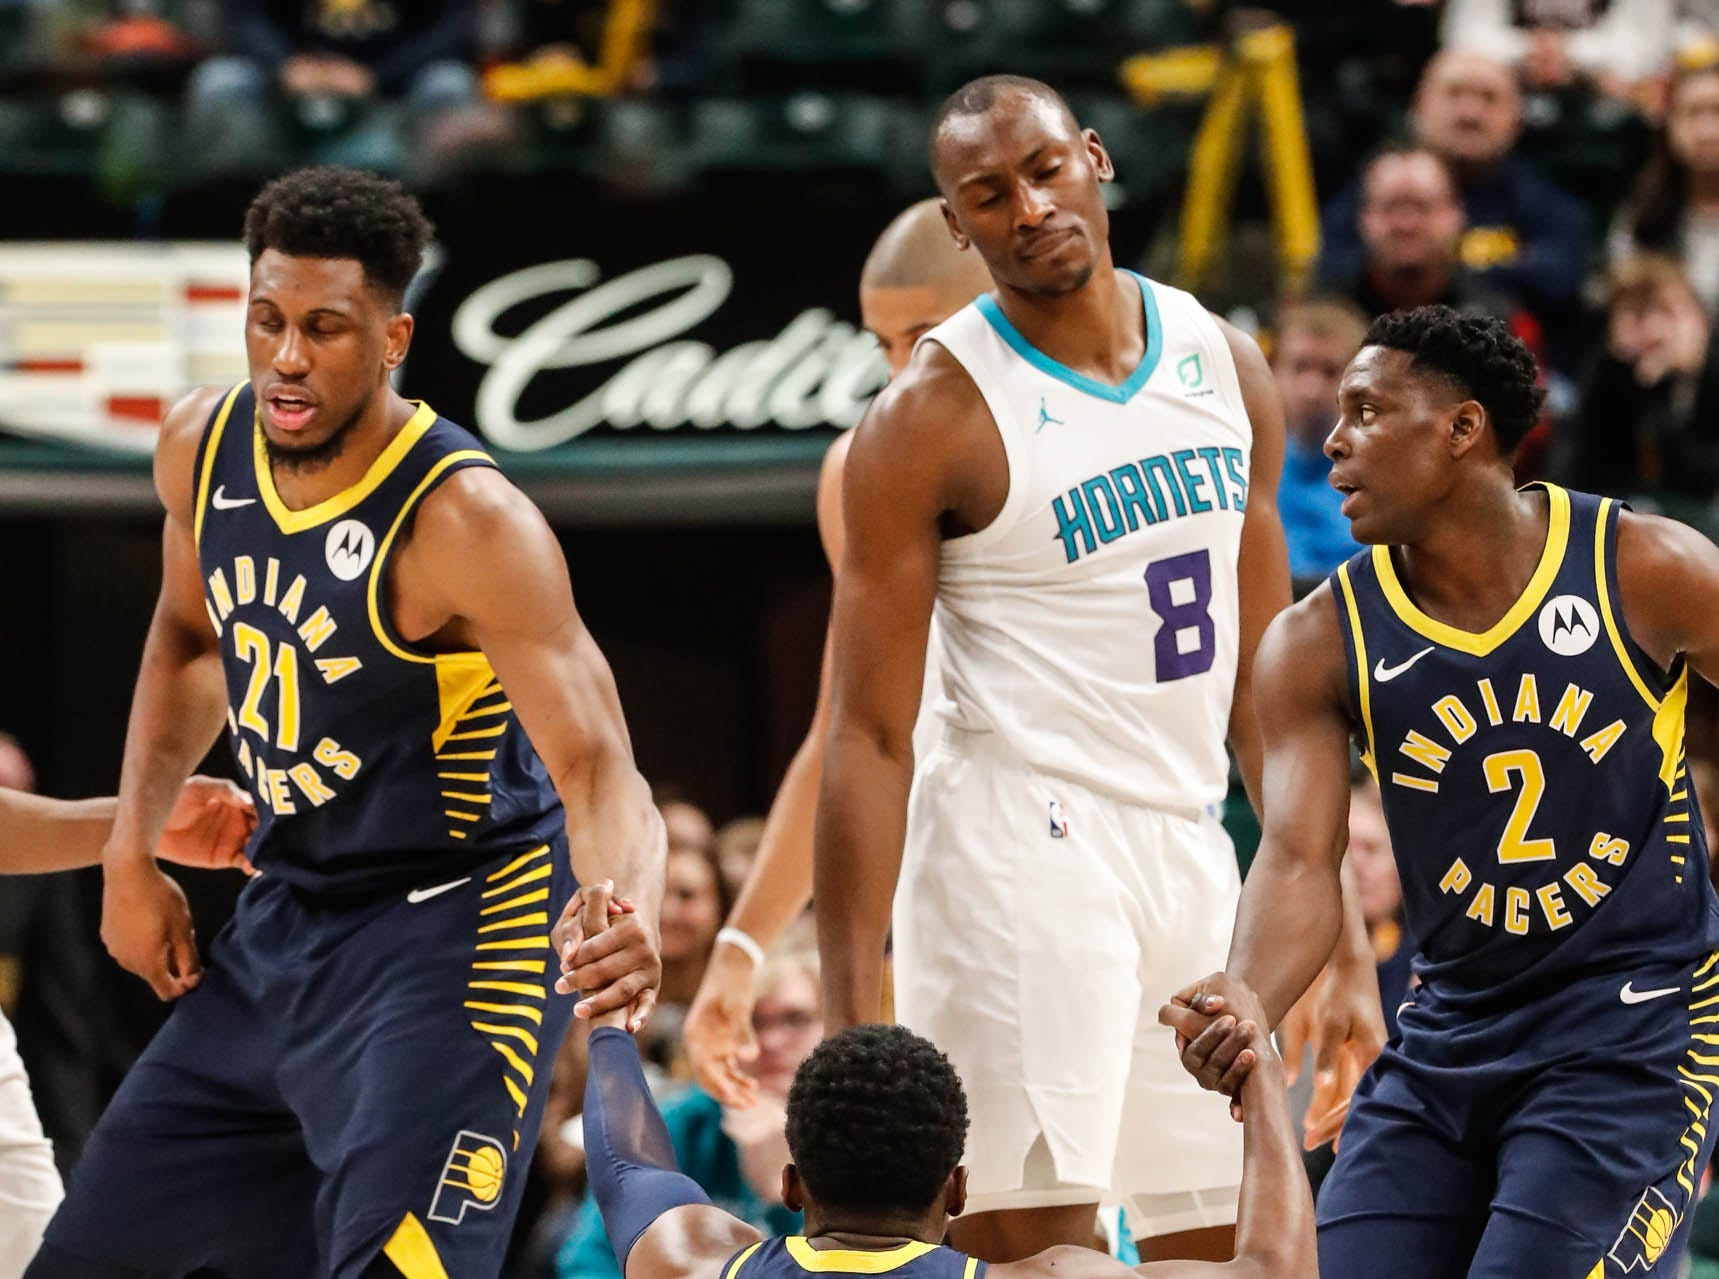 Indiana Pacers guard Victor Oladipo (4) is helped to his feet by team mates Indiana Pacers forward Thaddeus Young (21), and Indiana Pacers guard Darren Collison (2), as Charlotte Hornets center Bismack Biyombo (8) reacts, during a game between the Pacers and Hornets at Bankers Life Fieldhouse on Sunday, Jan. 20, 2019.